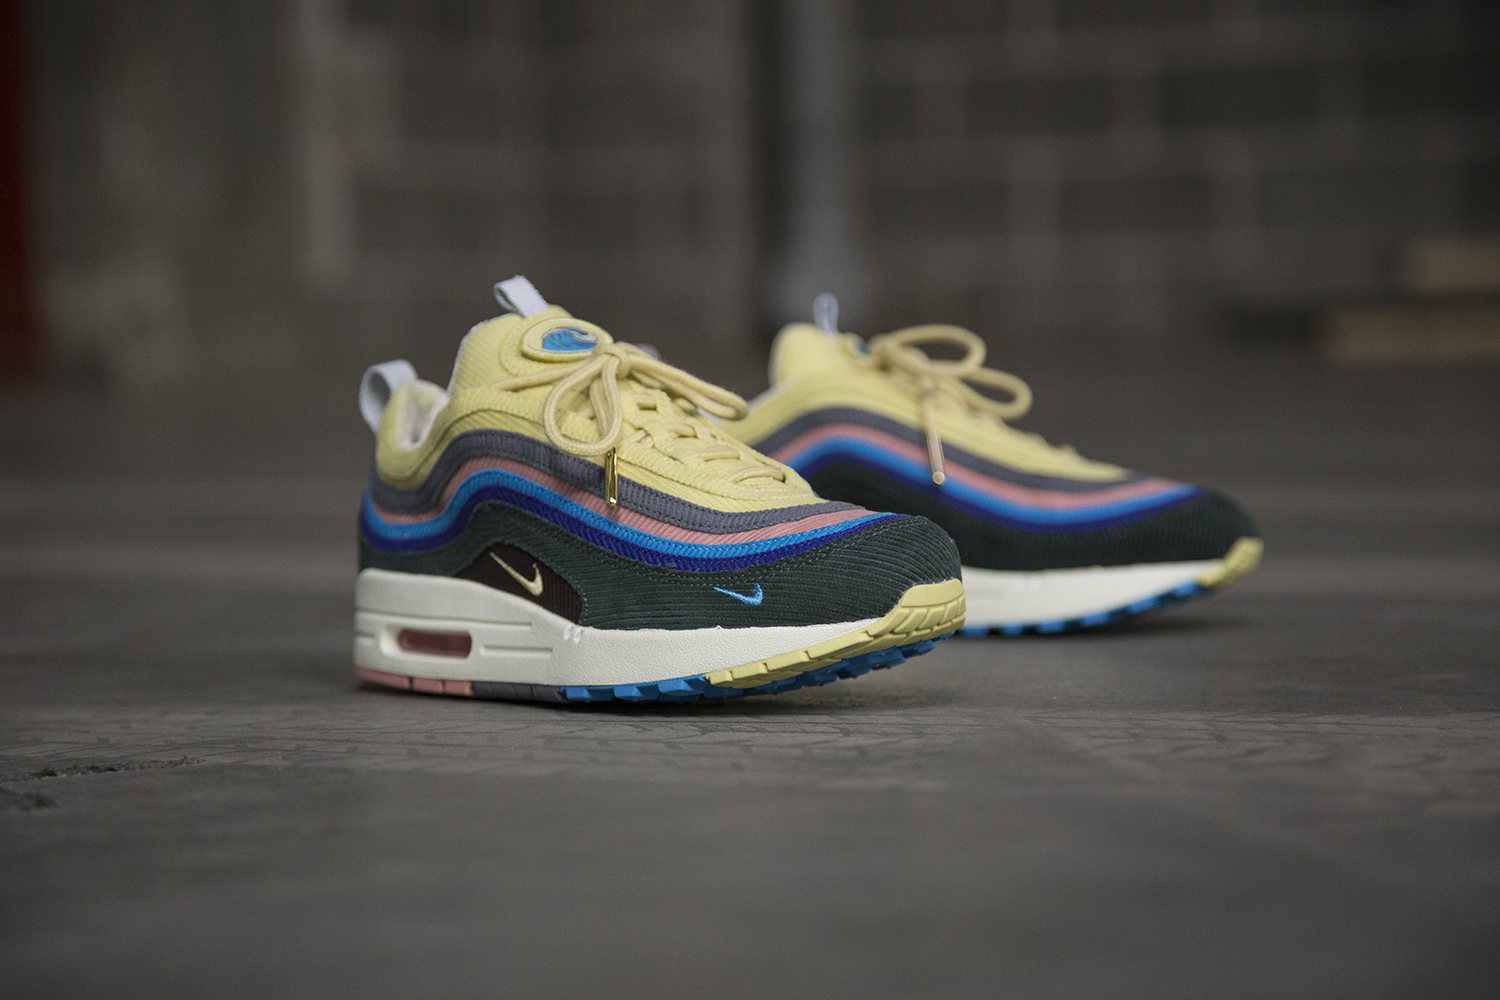 81f06c24f4c0 Unquestionably one of the most anticipated releases ahead of Air Max Day  this year is Sean Wotherspoon s winning entry to 2017 s  Vote Forward   competition